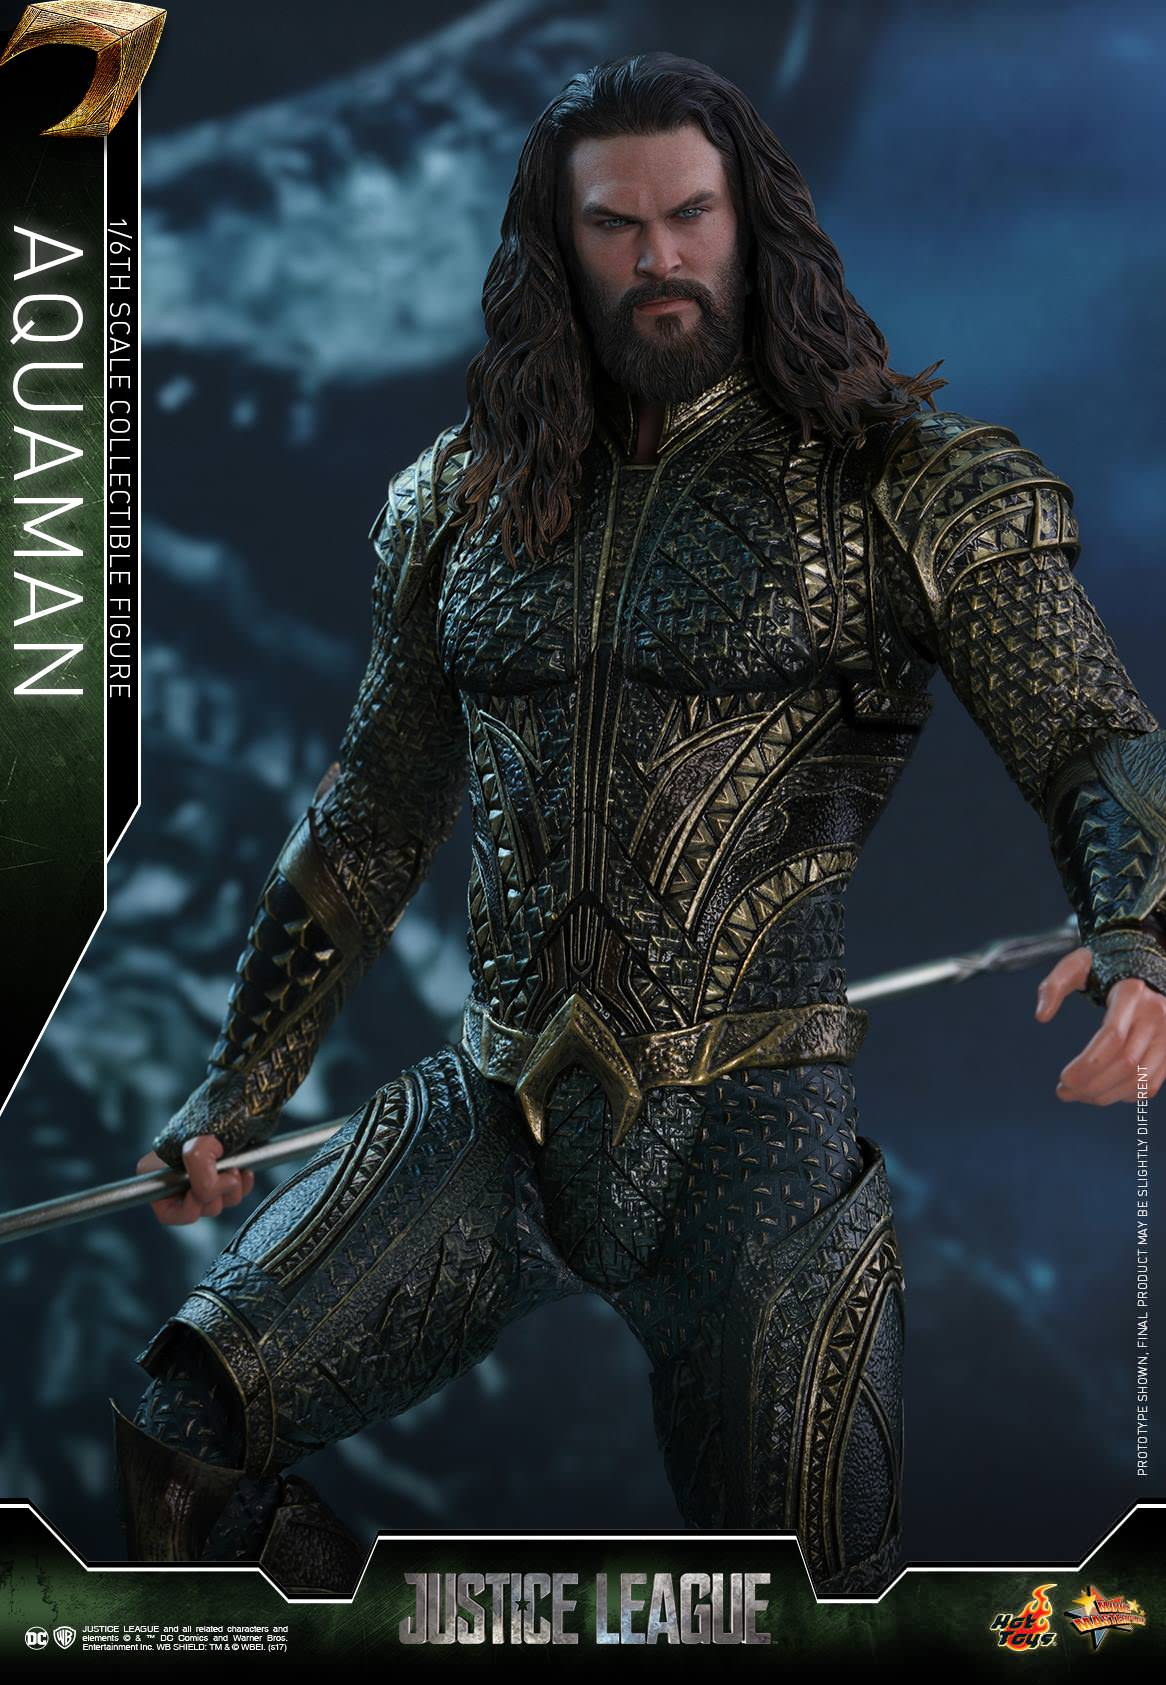 Hot Toys Justice League MMS447 Aquaman 1/6th Scale Collectible Figure